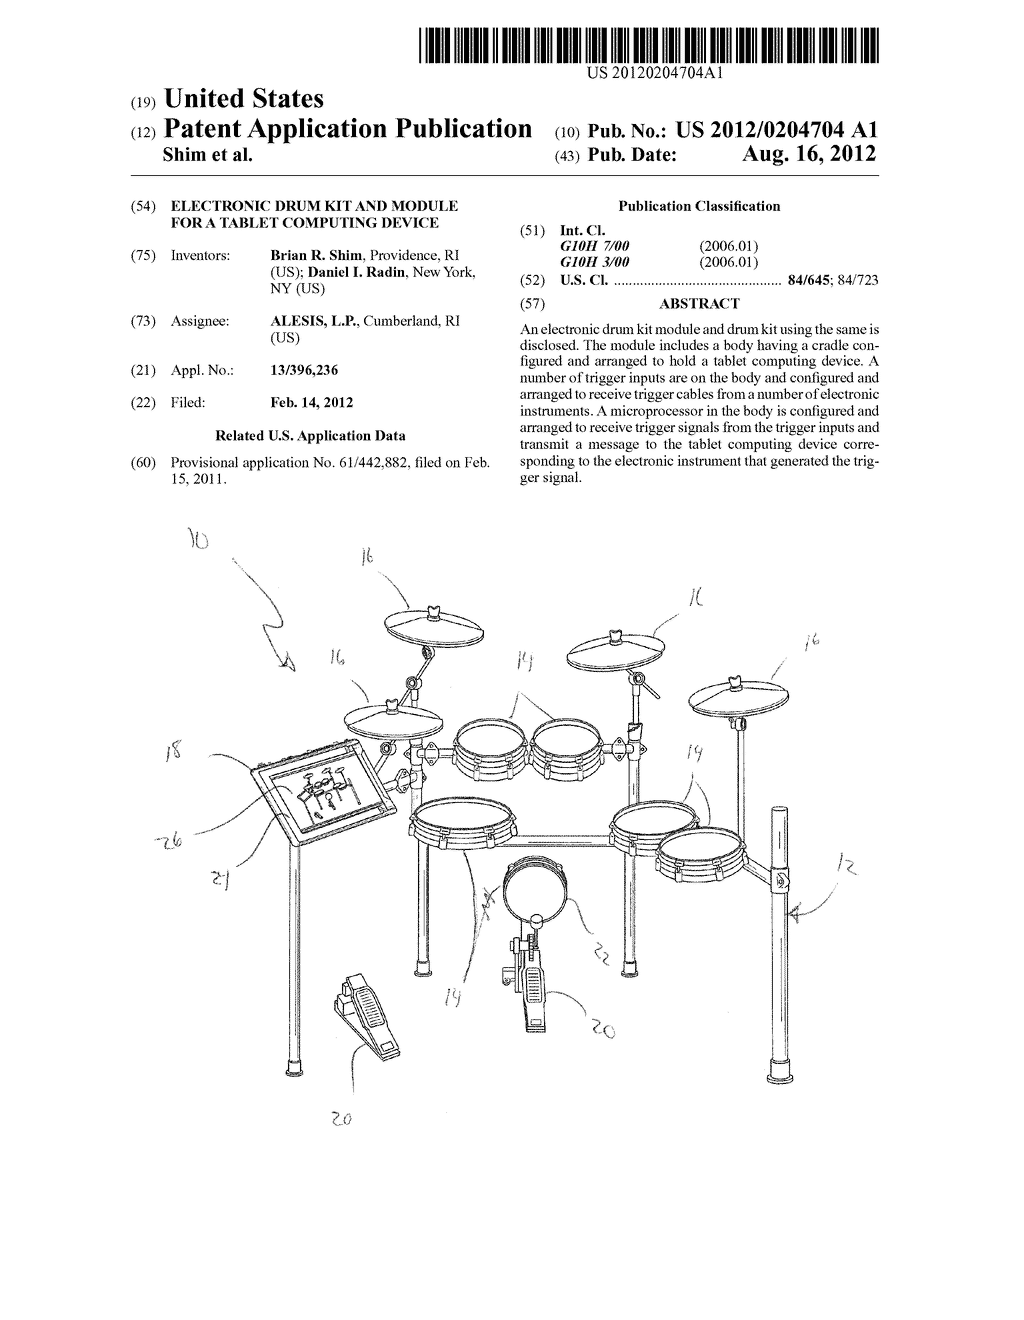 hight resolution of electronic drum kit and module for a tablet computing deviceelectronic drum kit and module for a